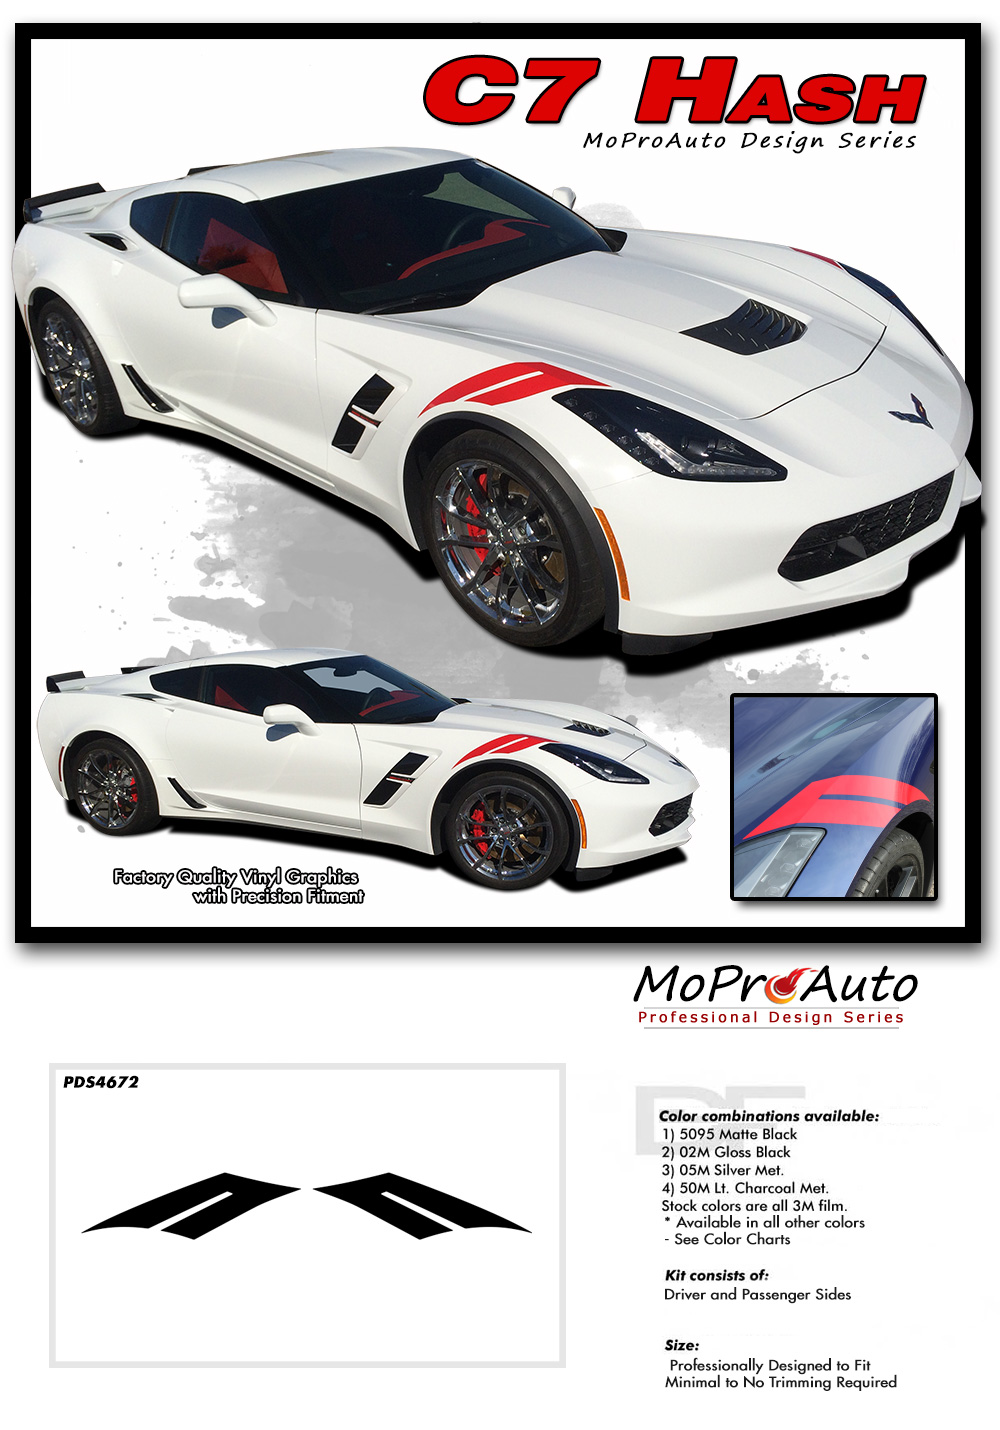 Chevy Corvette C7 Vinyl Graphics Stripes Striping and Decal Kits for 2014 2015 2016 2017 2018 2019 Models